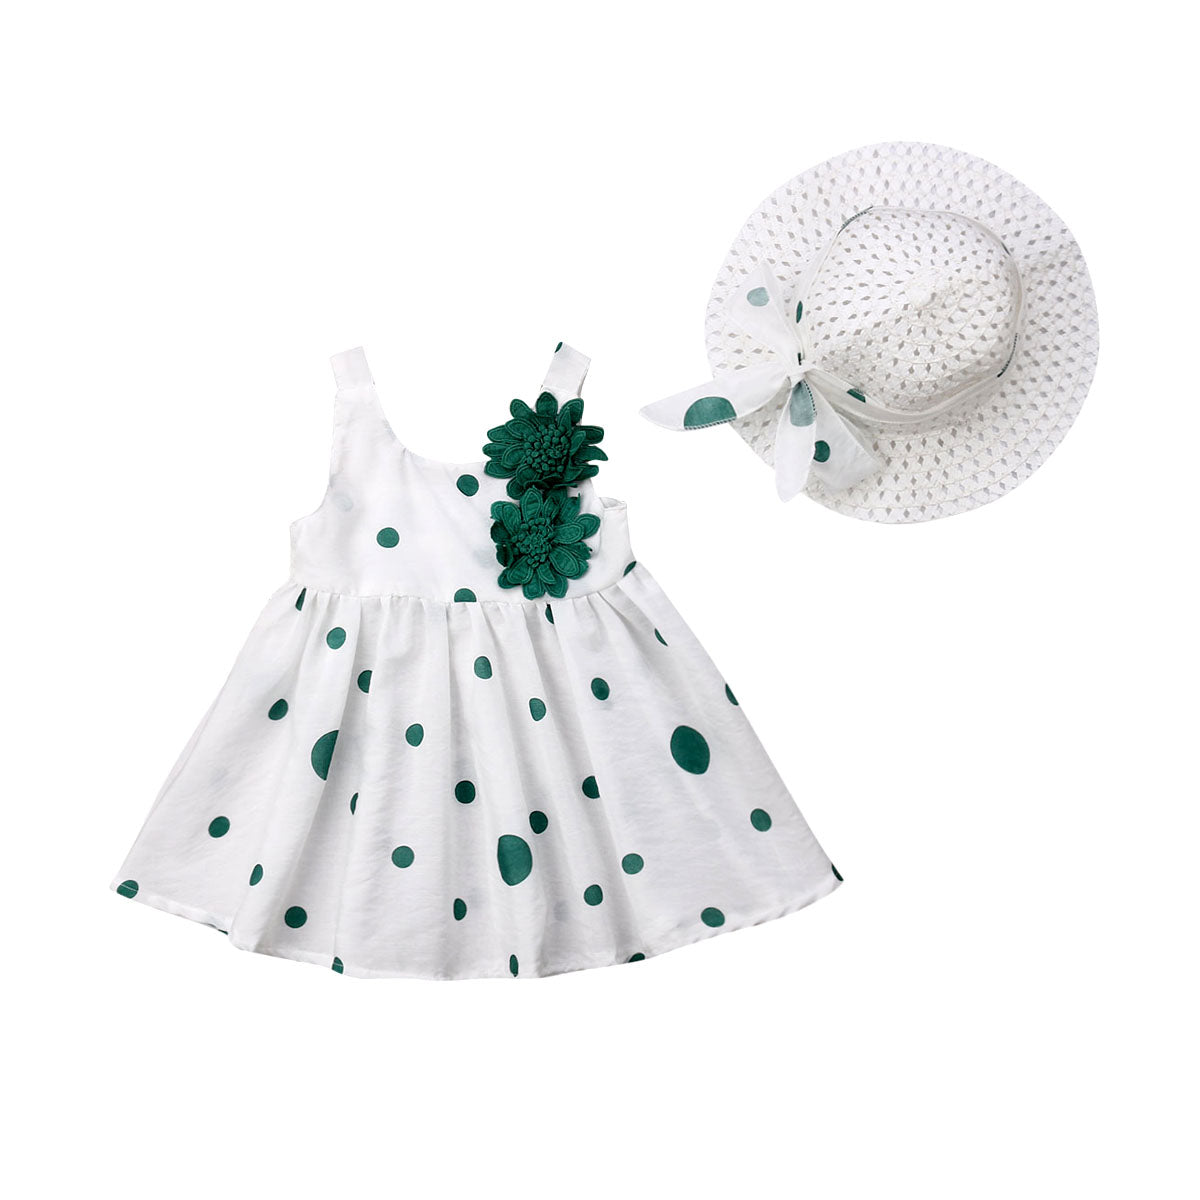 Classic 3D Flowers Frock with Princess Hat